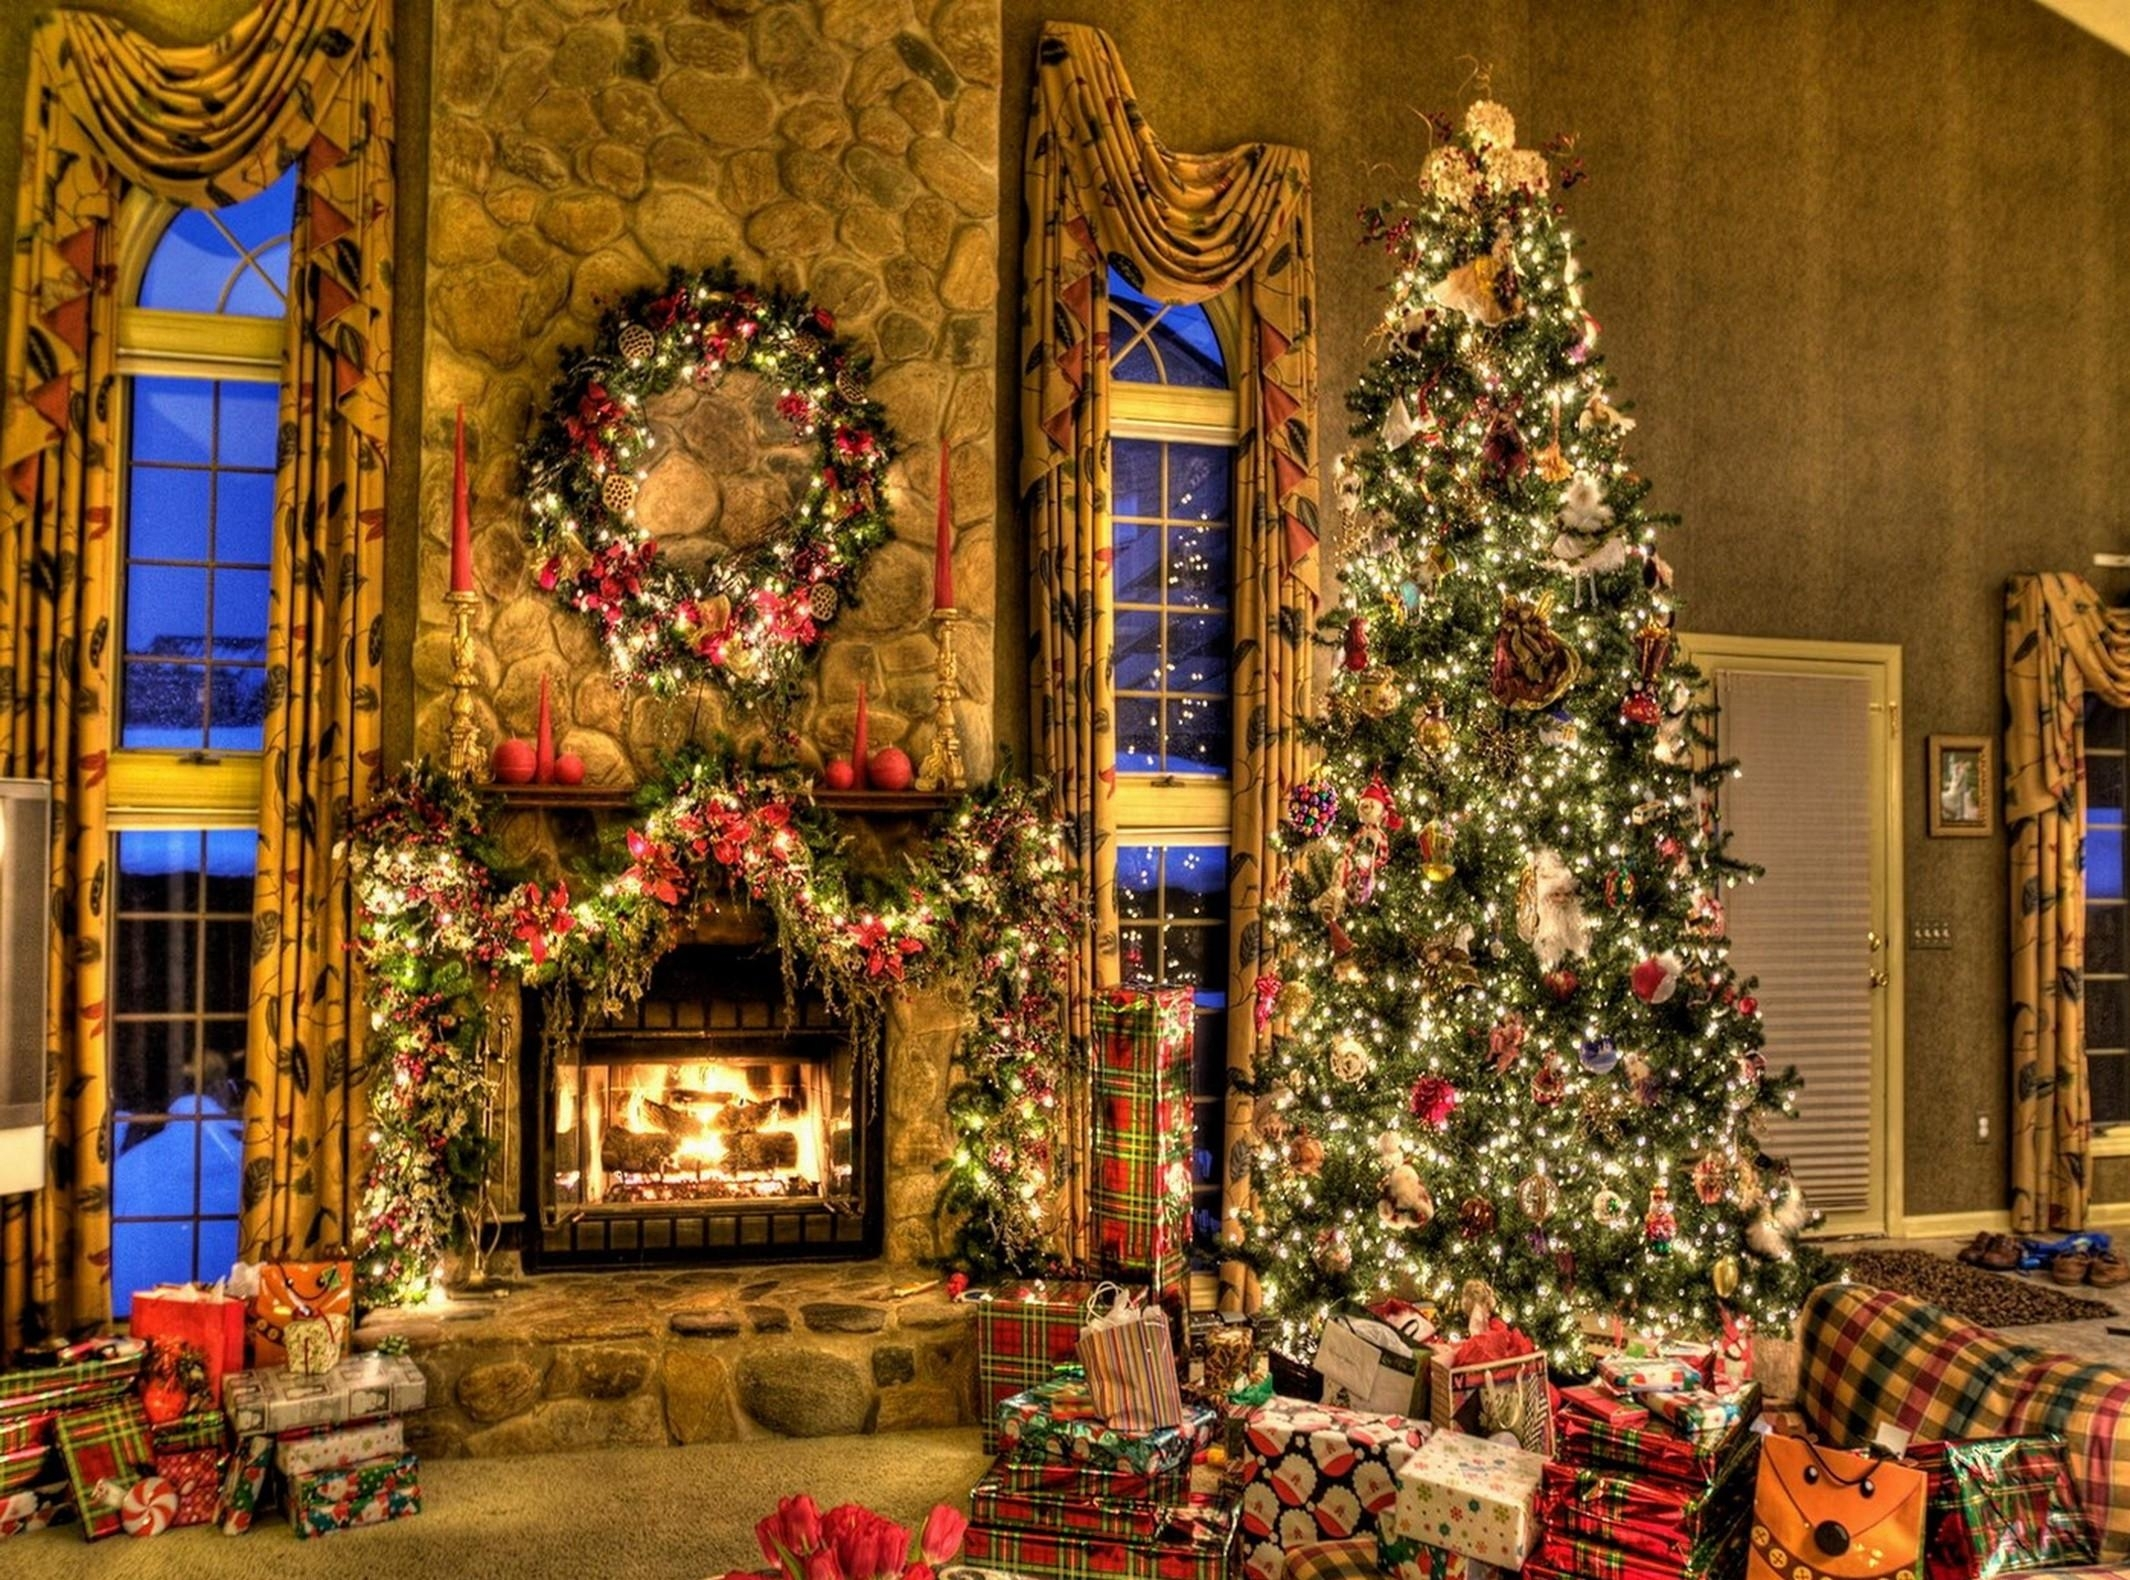 Christmas Tree and Fireplace   Wallpapers Pictures Pics Photos 2130x1580